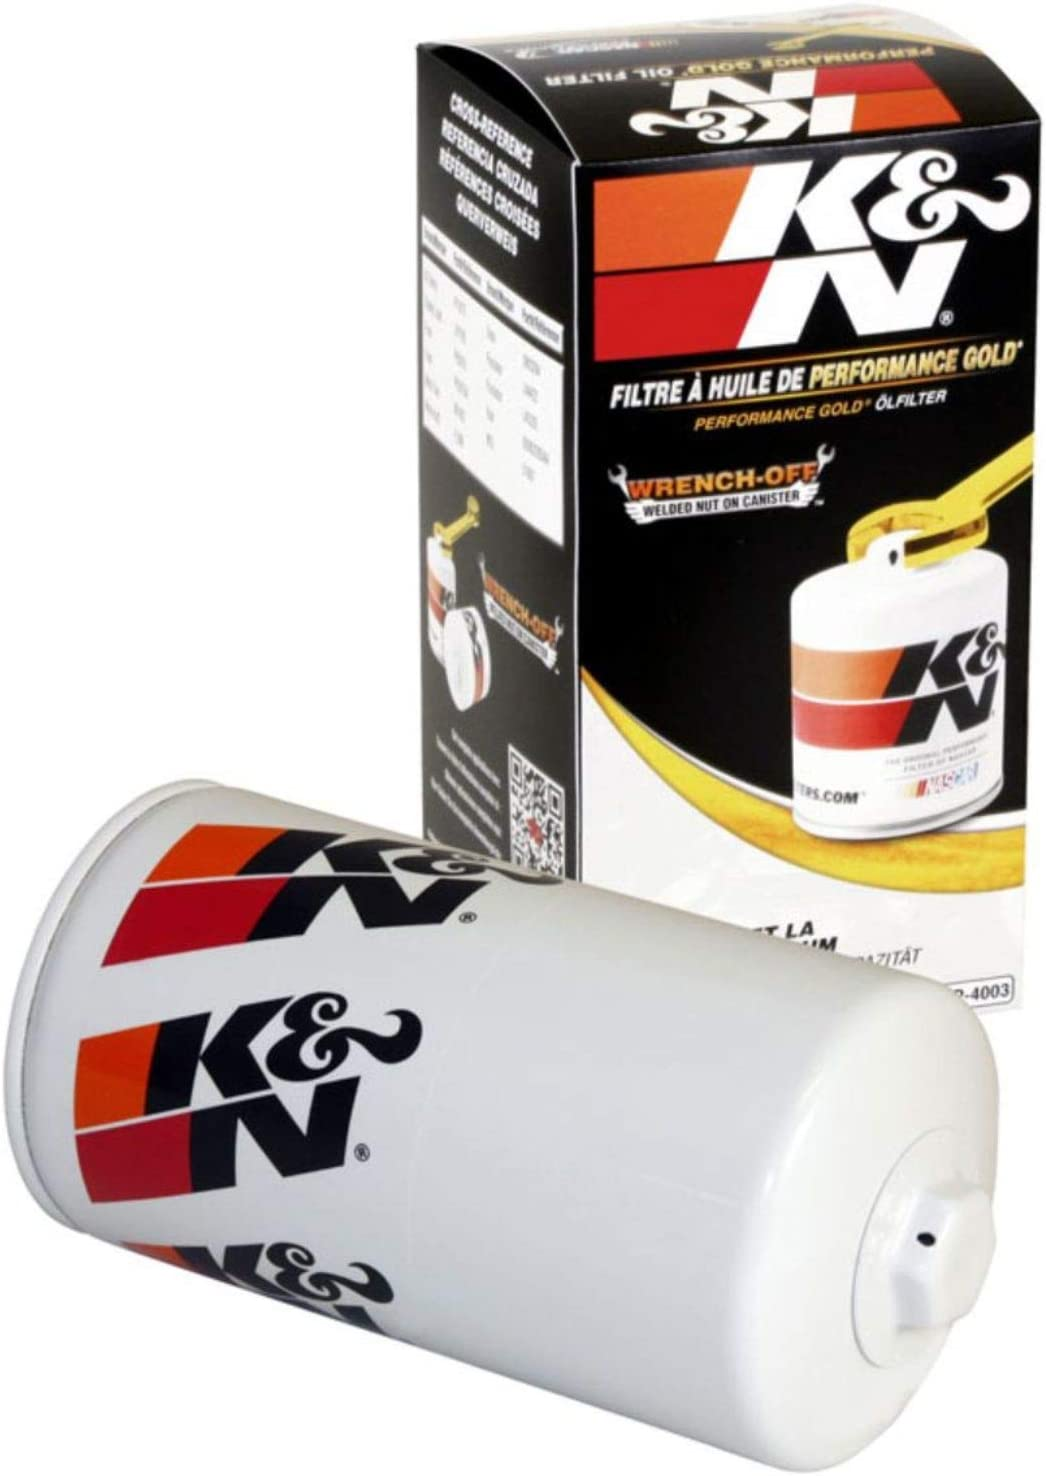 K&N Premium Oil Filter: Designed to Protect your Engine: Fits Select 1989-2019 RAM/DODGE/STERLING (Ram, 2500, 3500, 4000, 4500, 5500, D250, D350, W250, W350, Bullet 45, Bullet 55), HP-4003